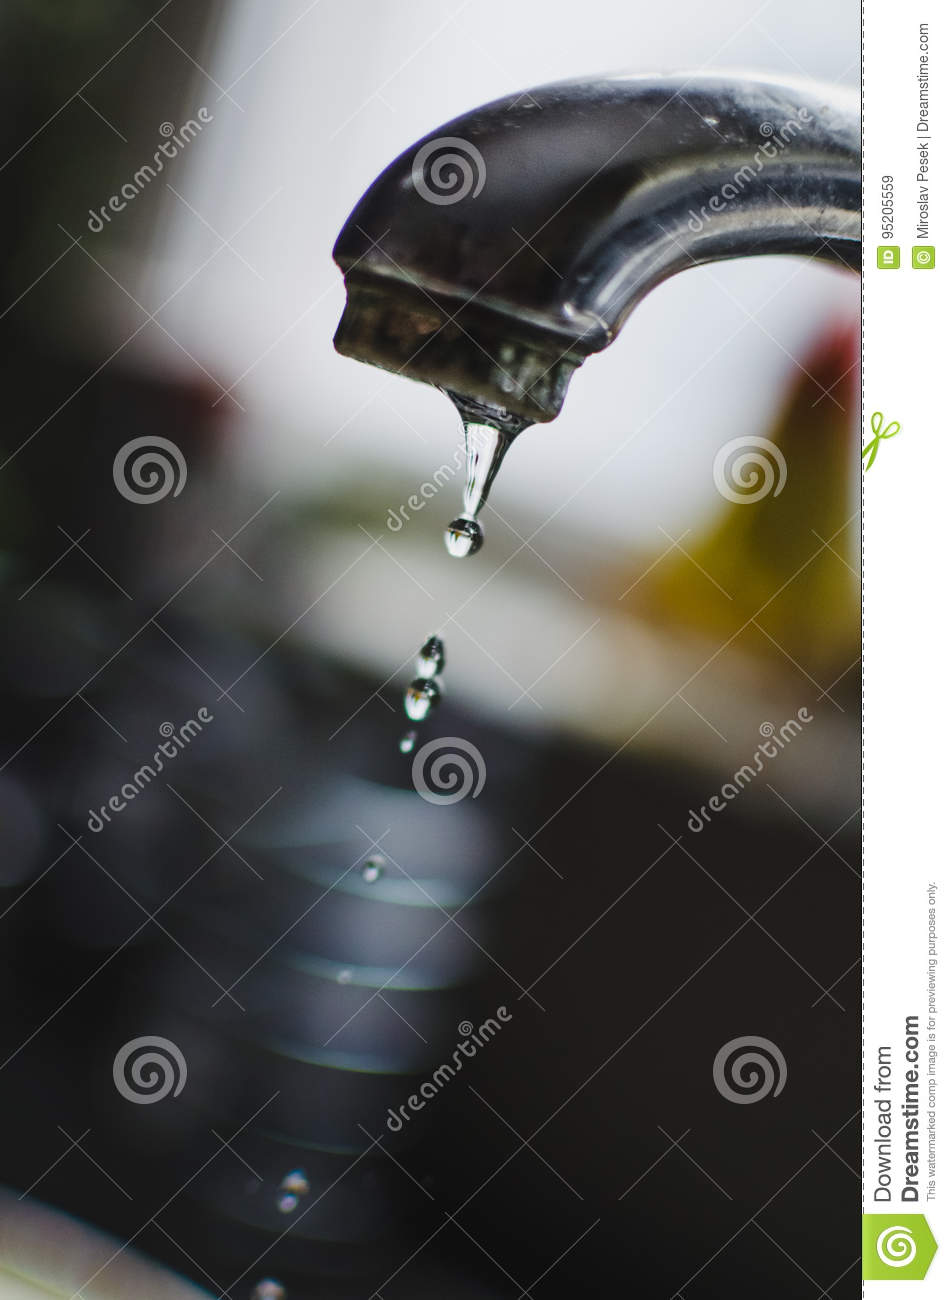 Dripping kitchen tap stock image. Image of sink, droplet - 95205559